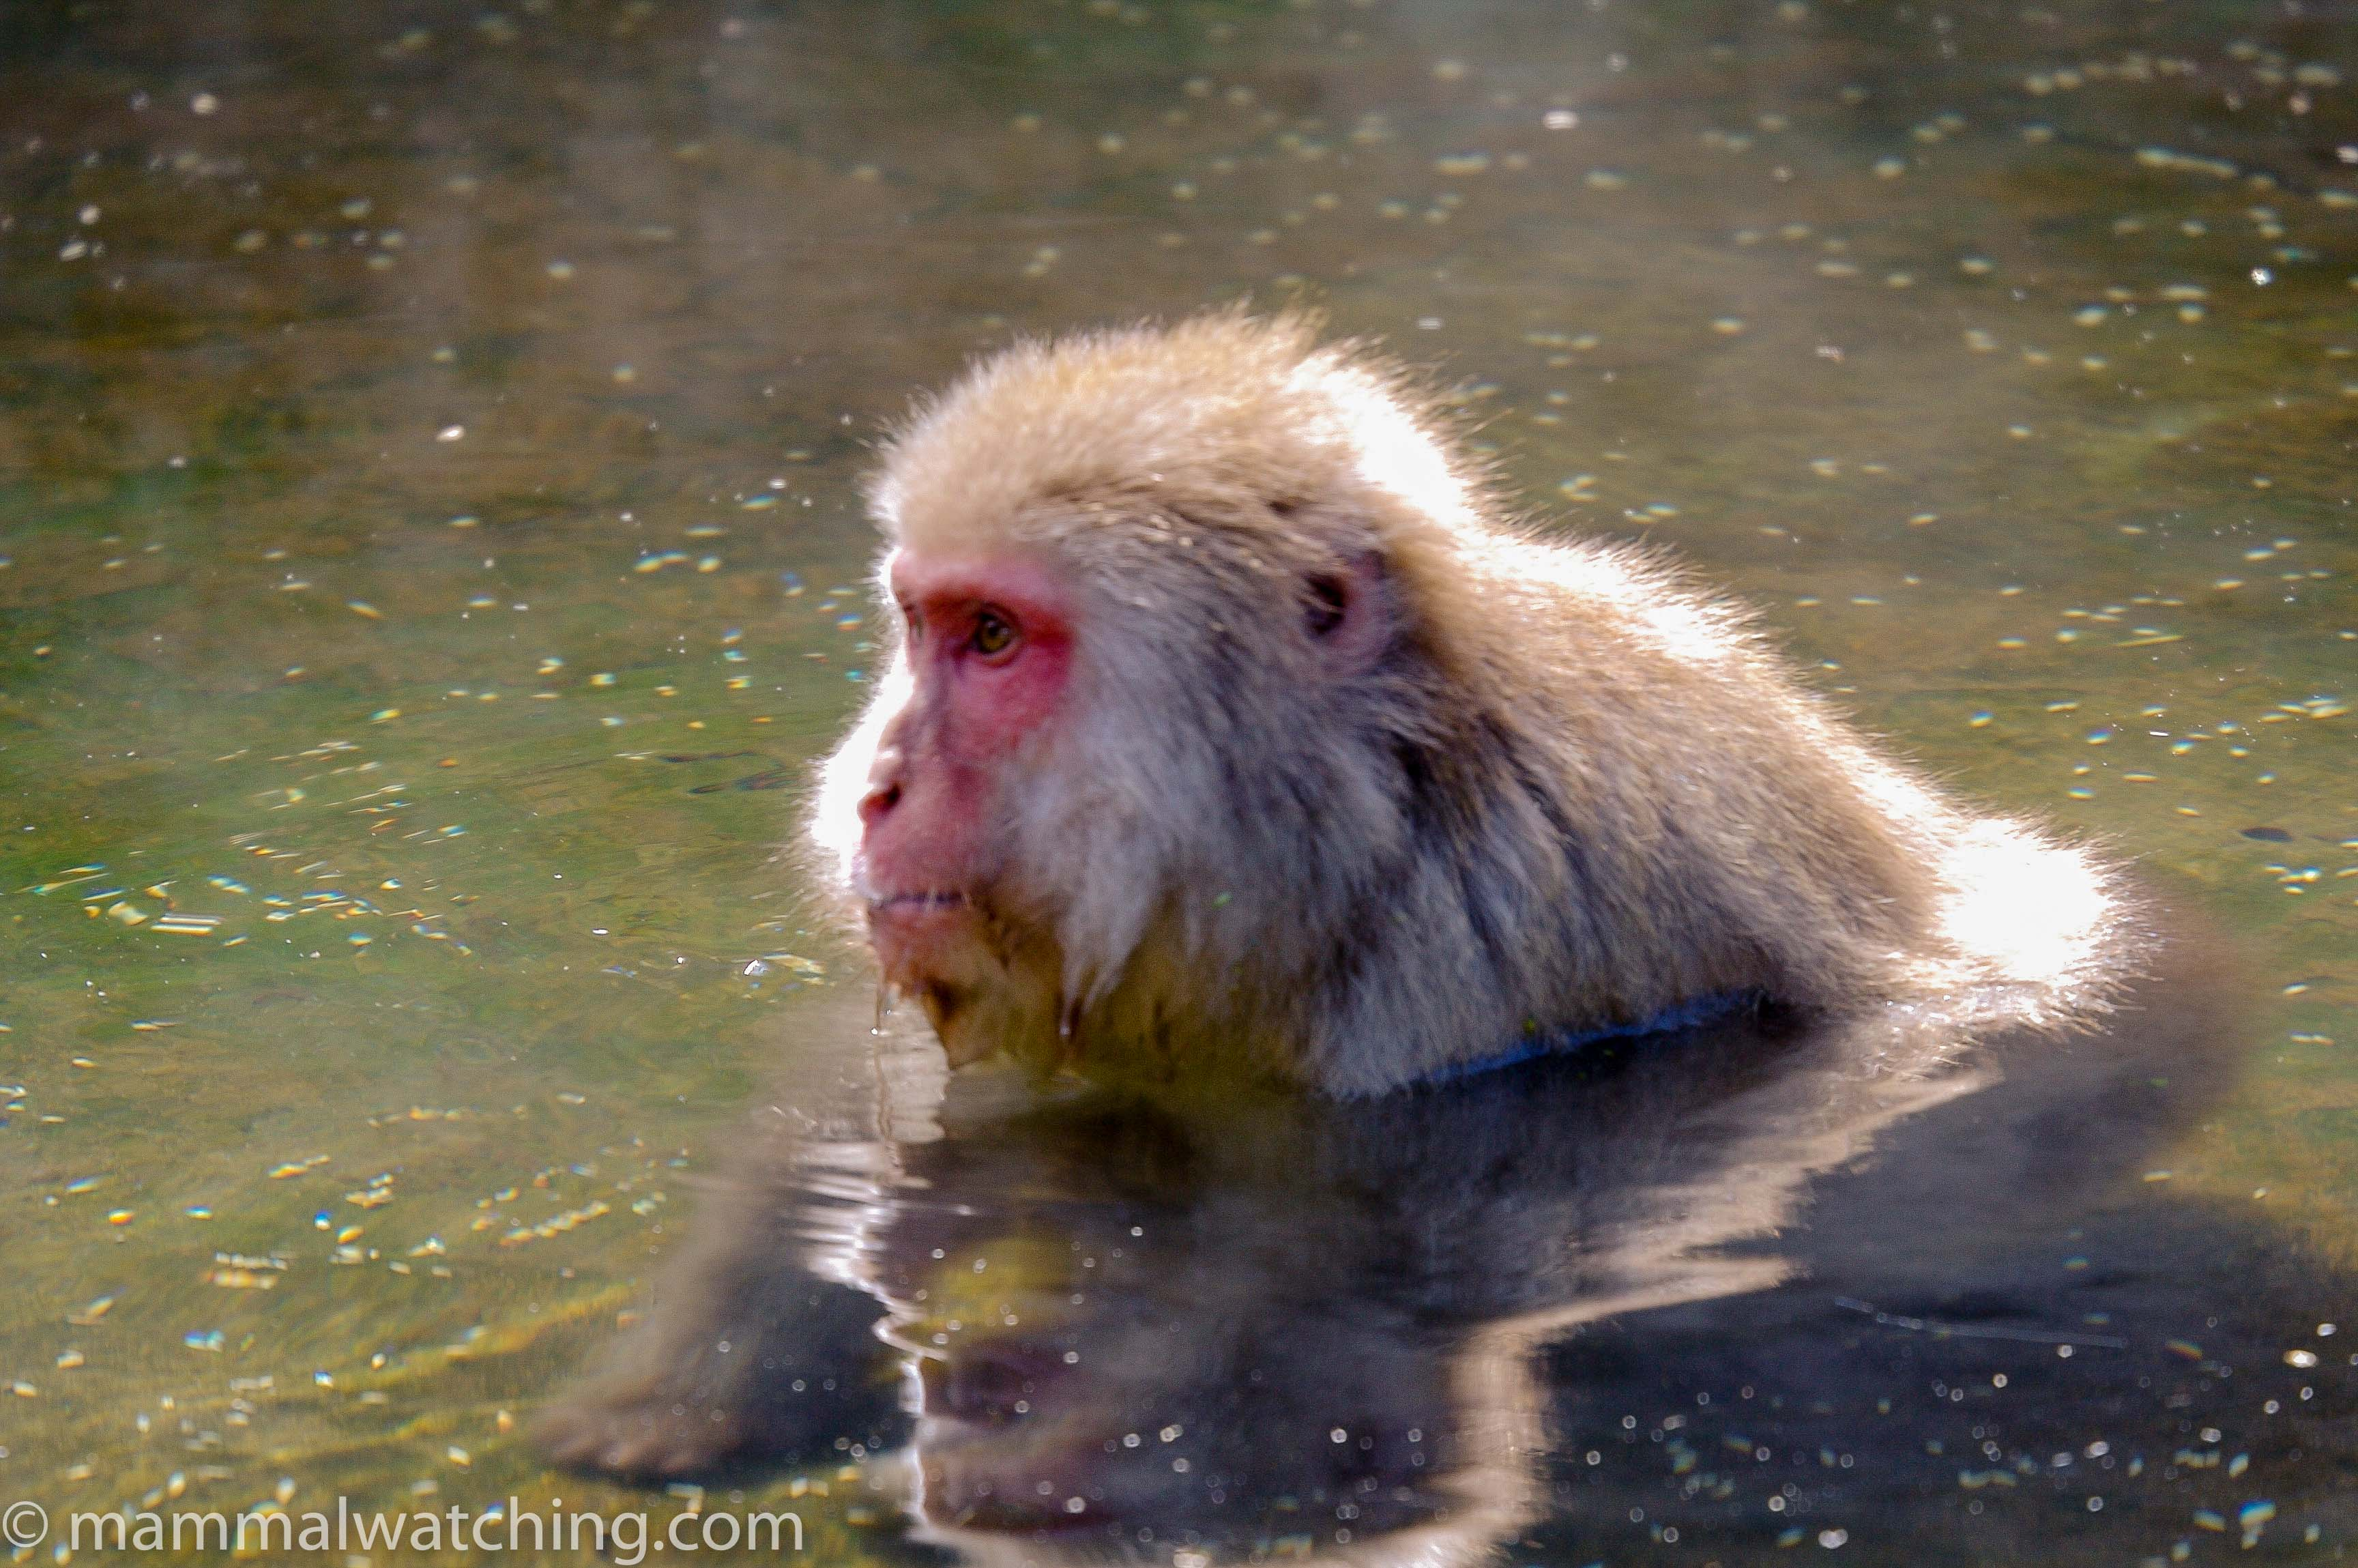 Snow Monkey Or Japanese Macaque, Macaca Fuscata, Group Mammals ...